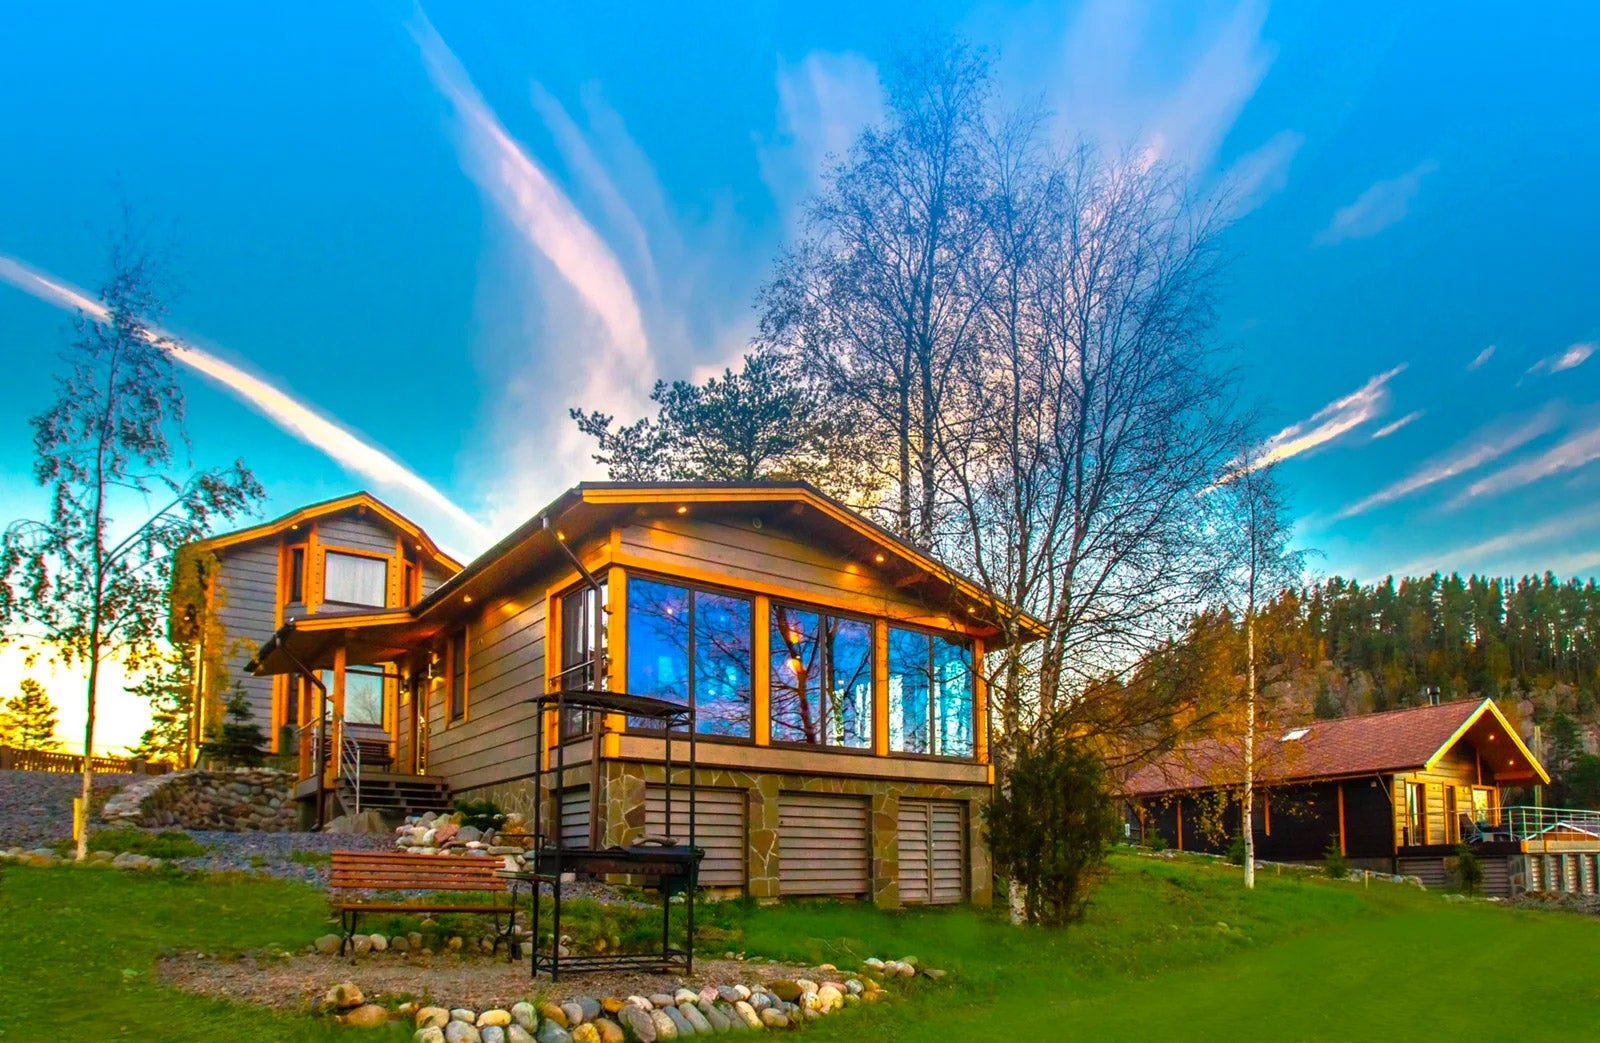 Cheakamus Crossing Homes for Sale